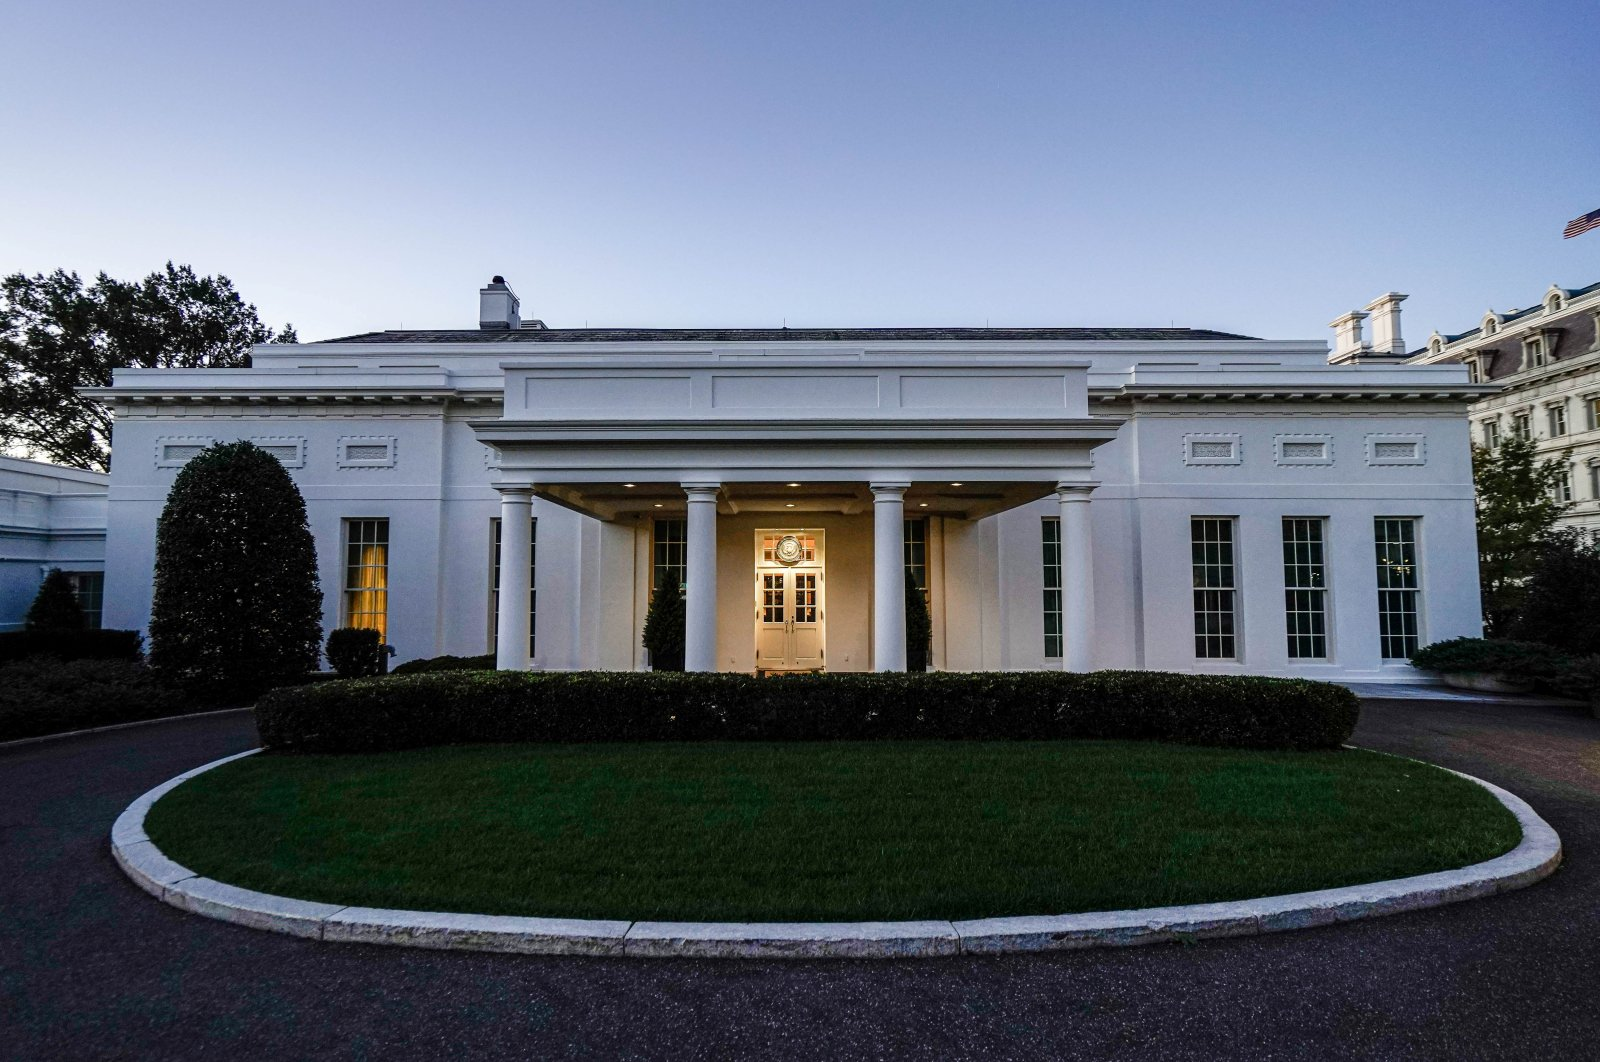 The White House West Wing entrance as seen early in the morning prior to U.S. President Donald Trump departing on campaign travel to Michigan and Wisconsin, Washington, D.C., U.S., Oct. 17, 2020. (REUTERS Photo)